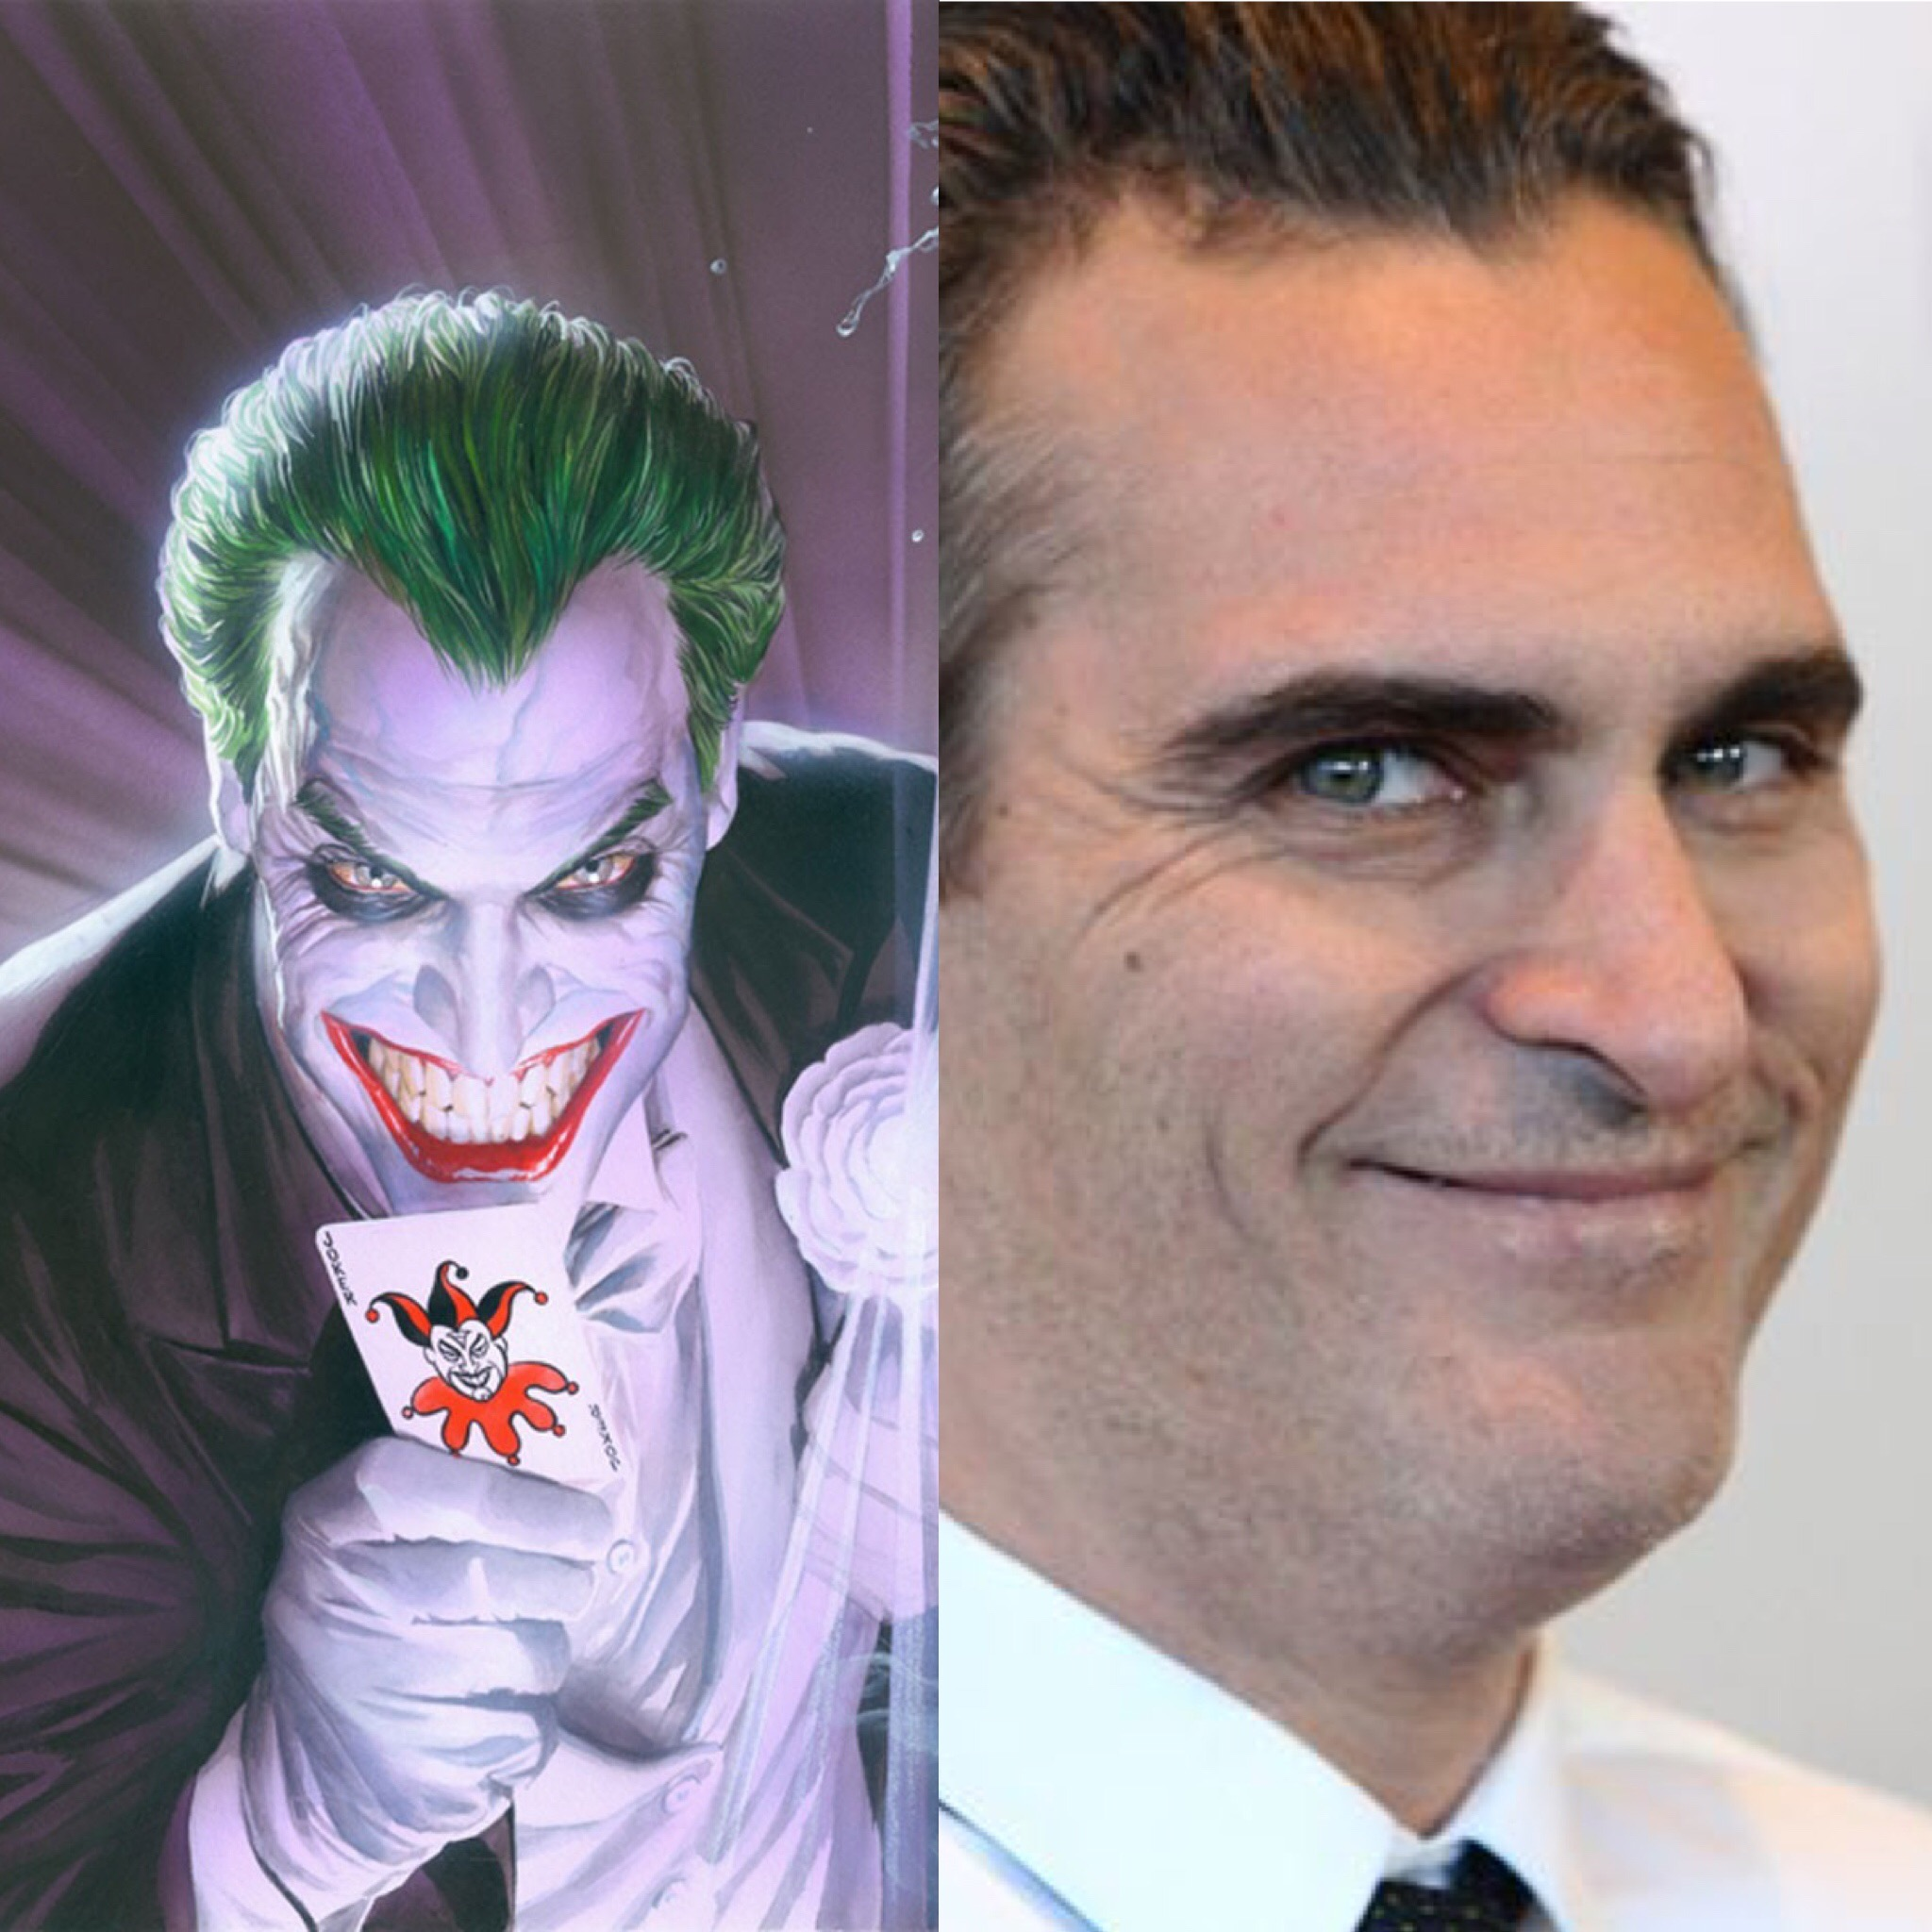 Nothing against Joaquin Phoenix but..